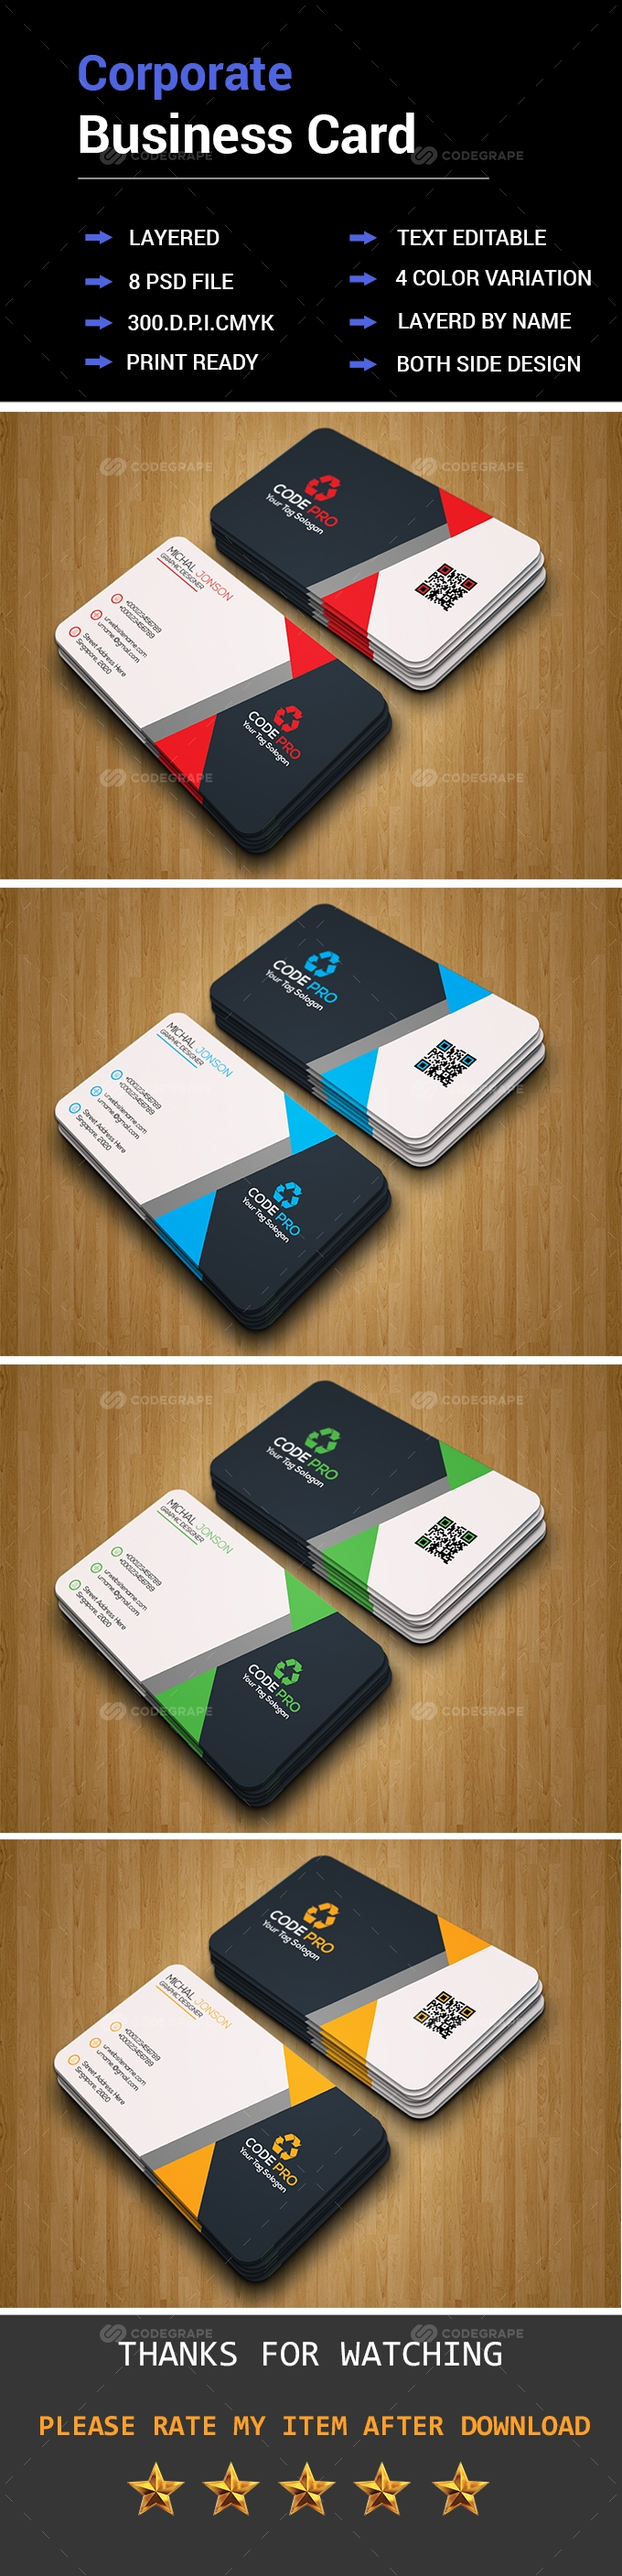 Pin by CodeGrape on Print | Pinterest | Business cards, Business and ...